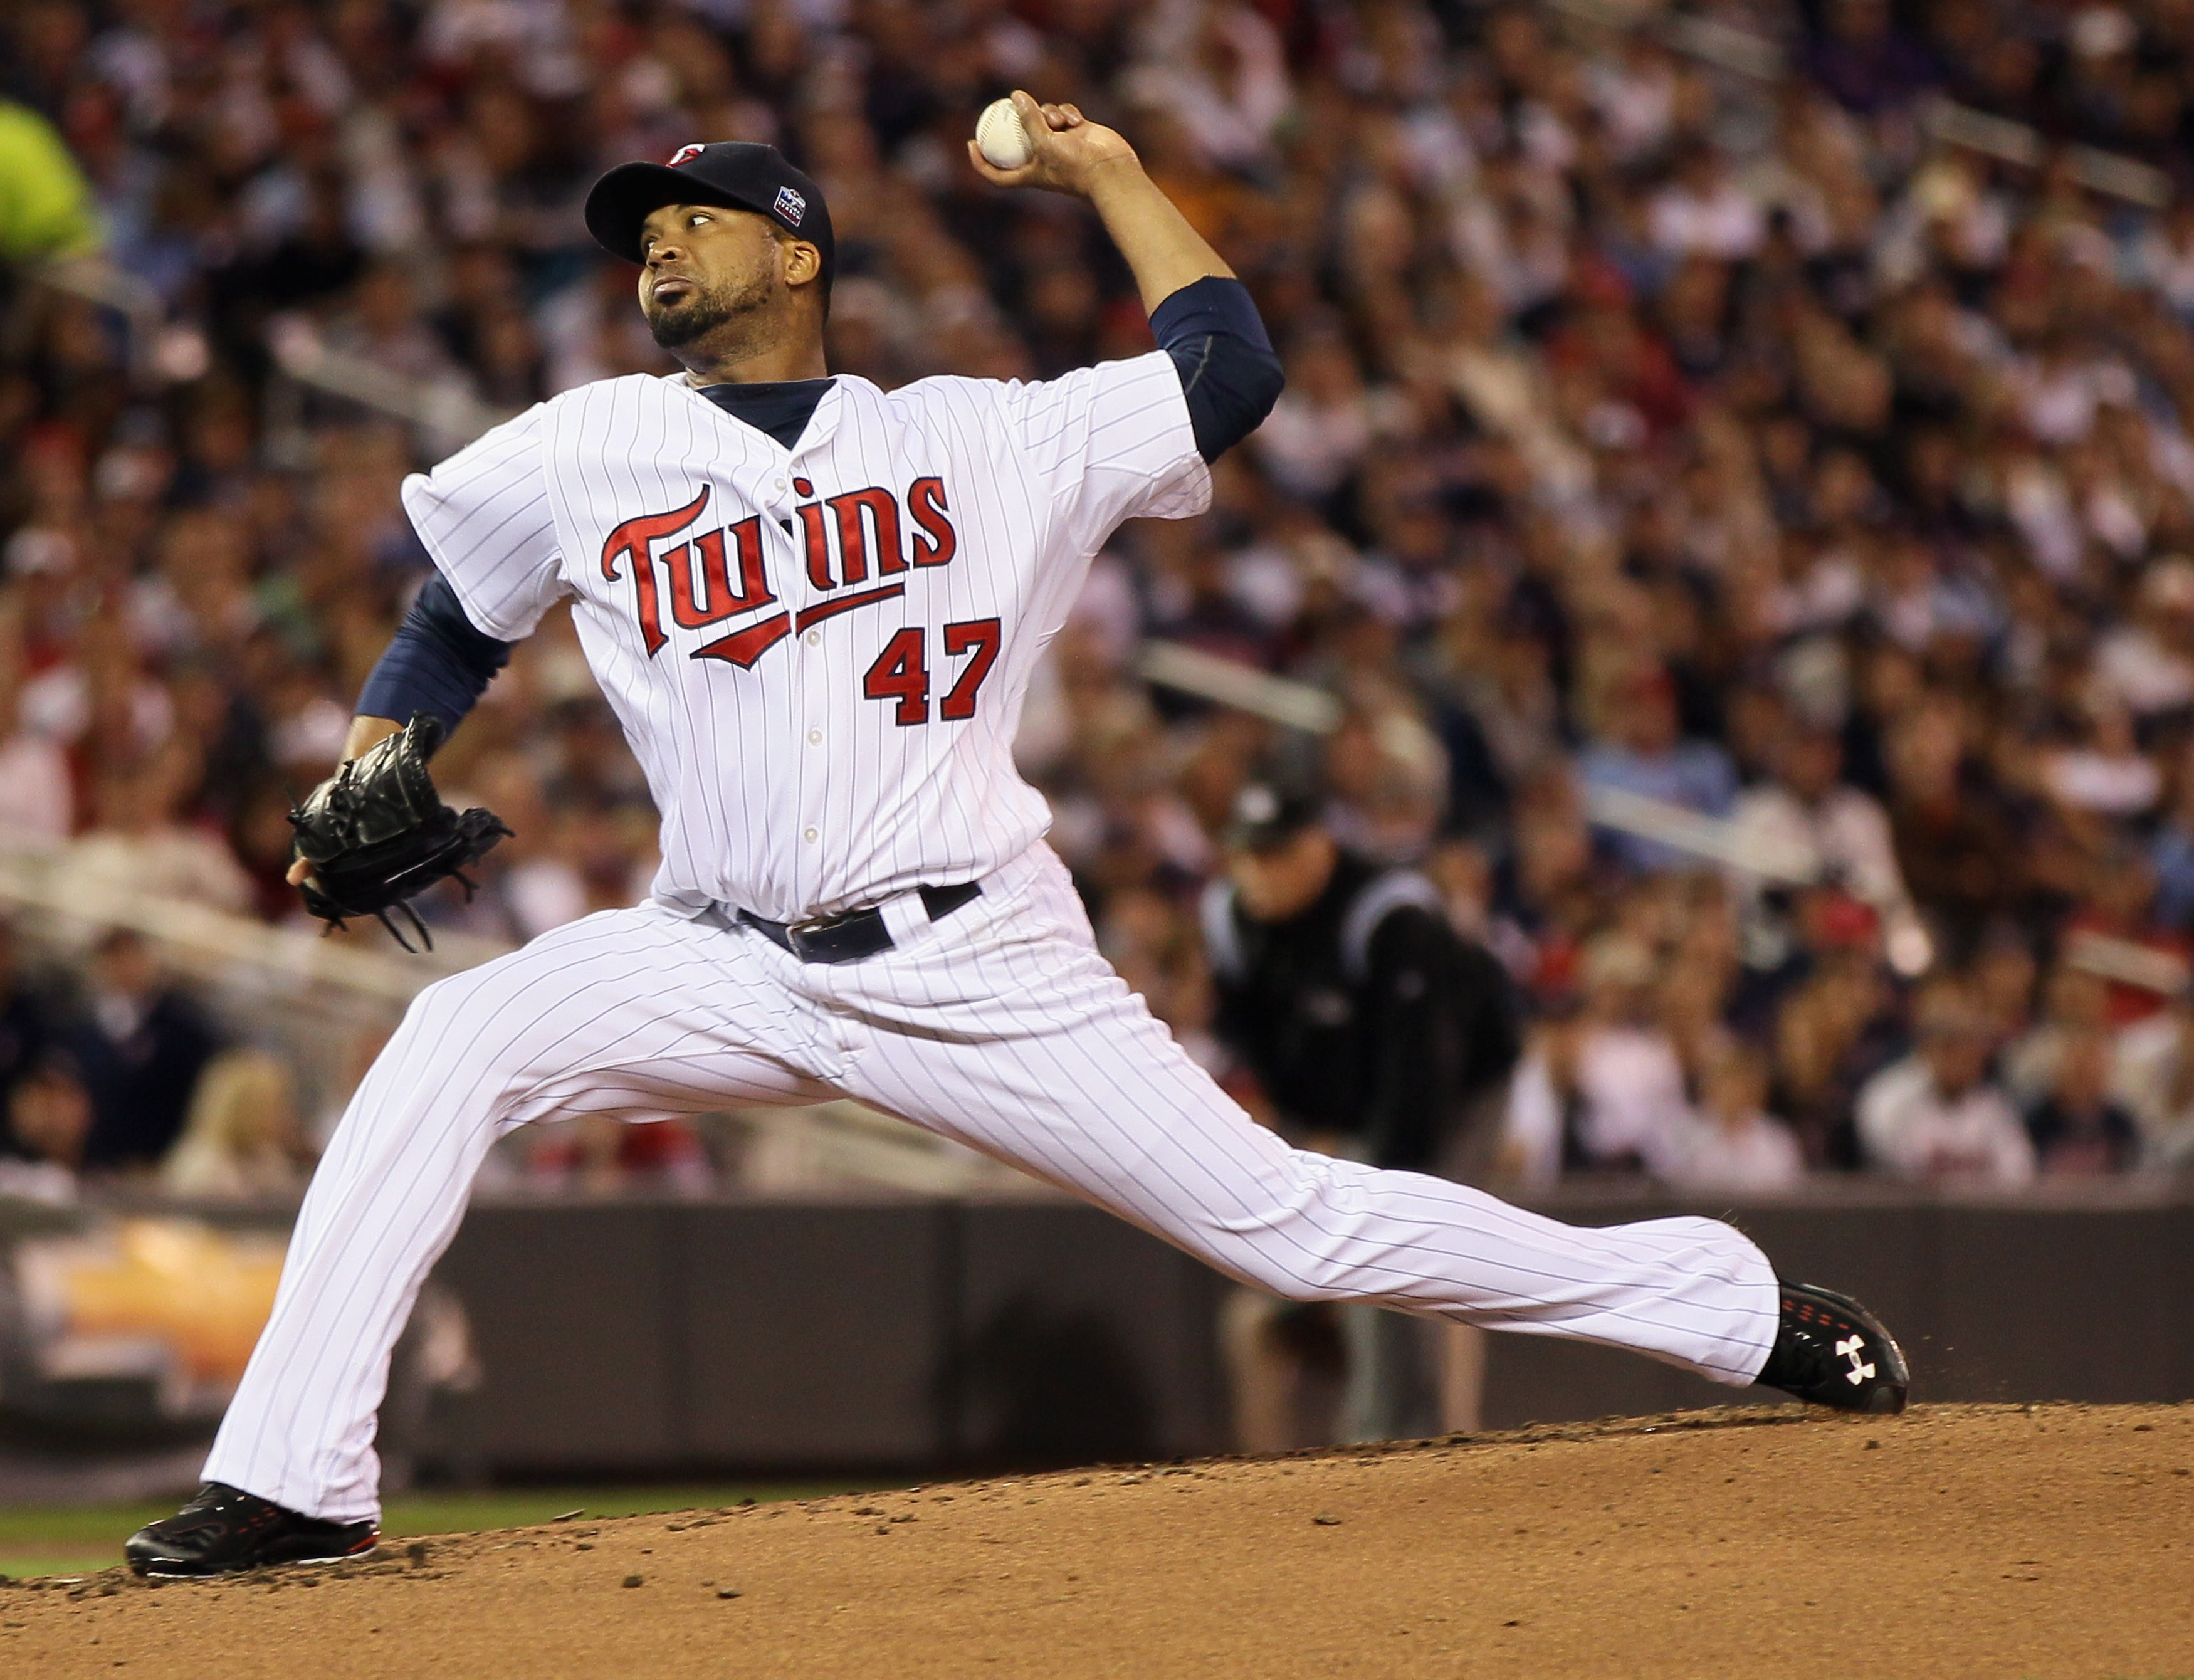 Francisco Liriano has emerged as the Twins' ace after a season in which he stayed healthy and stayed dominant.